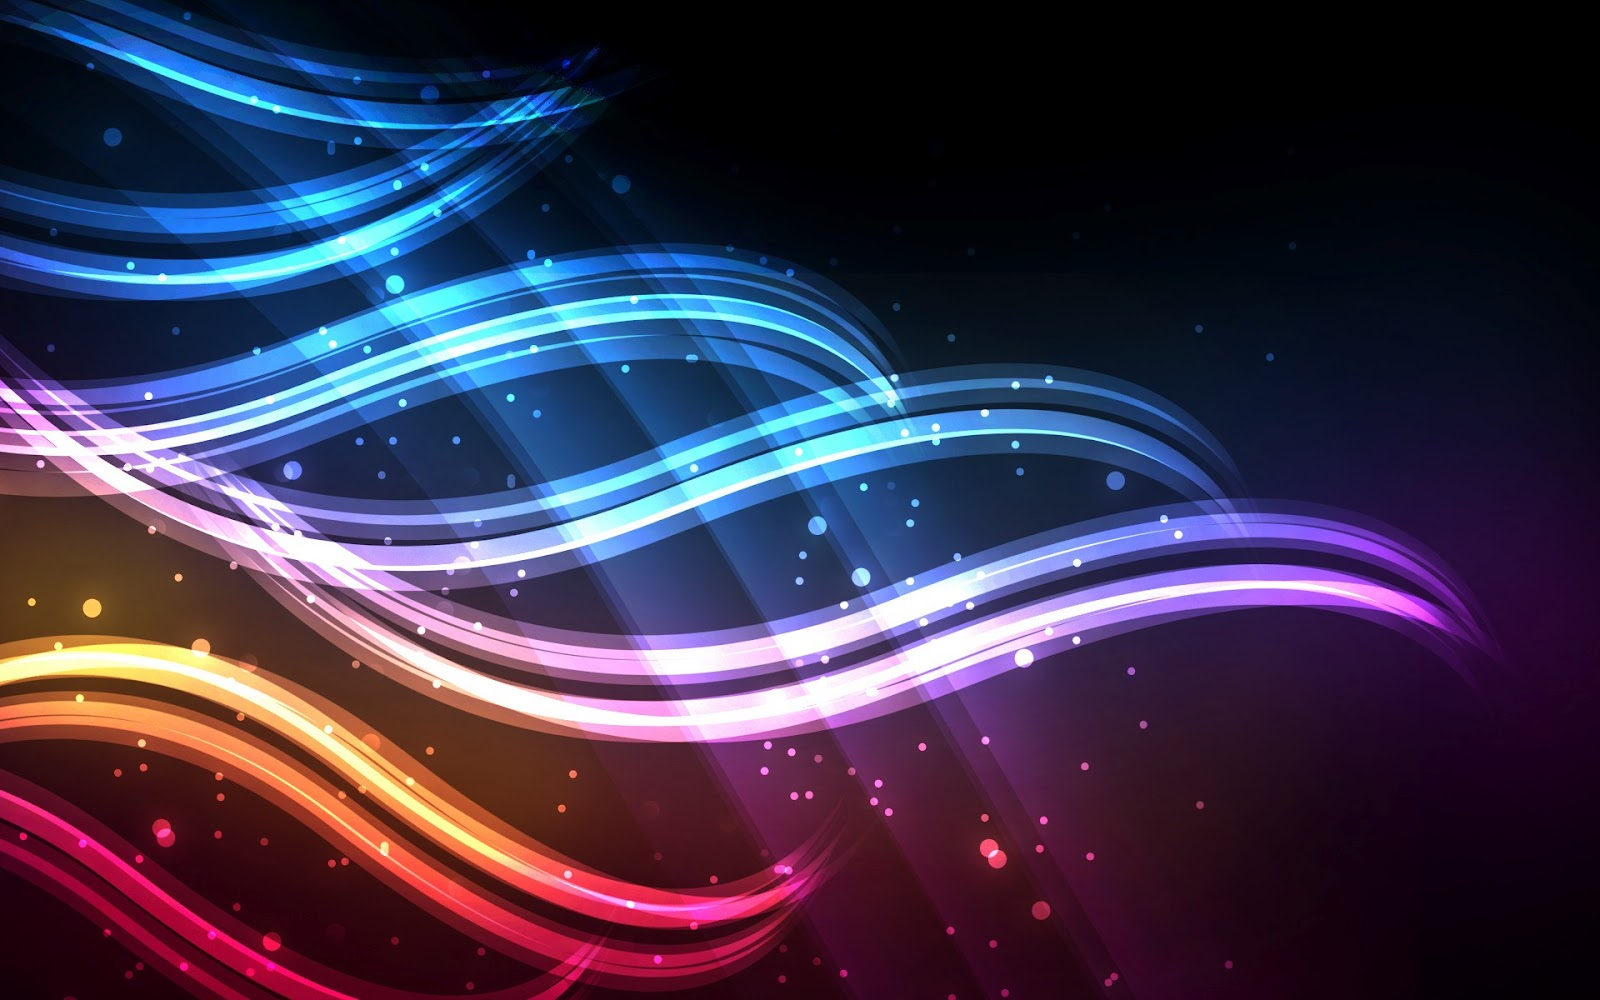 Colorful abstract wallpapers 01 1920 1200